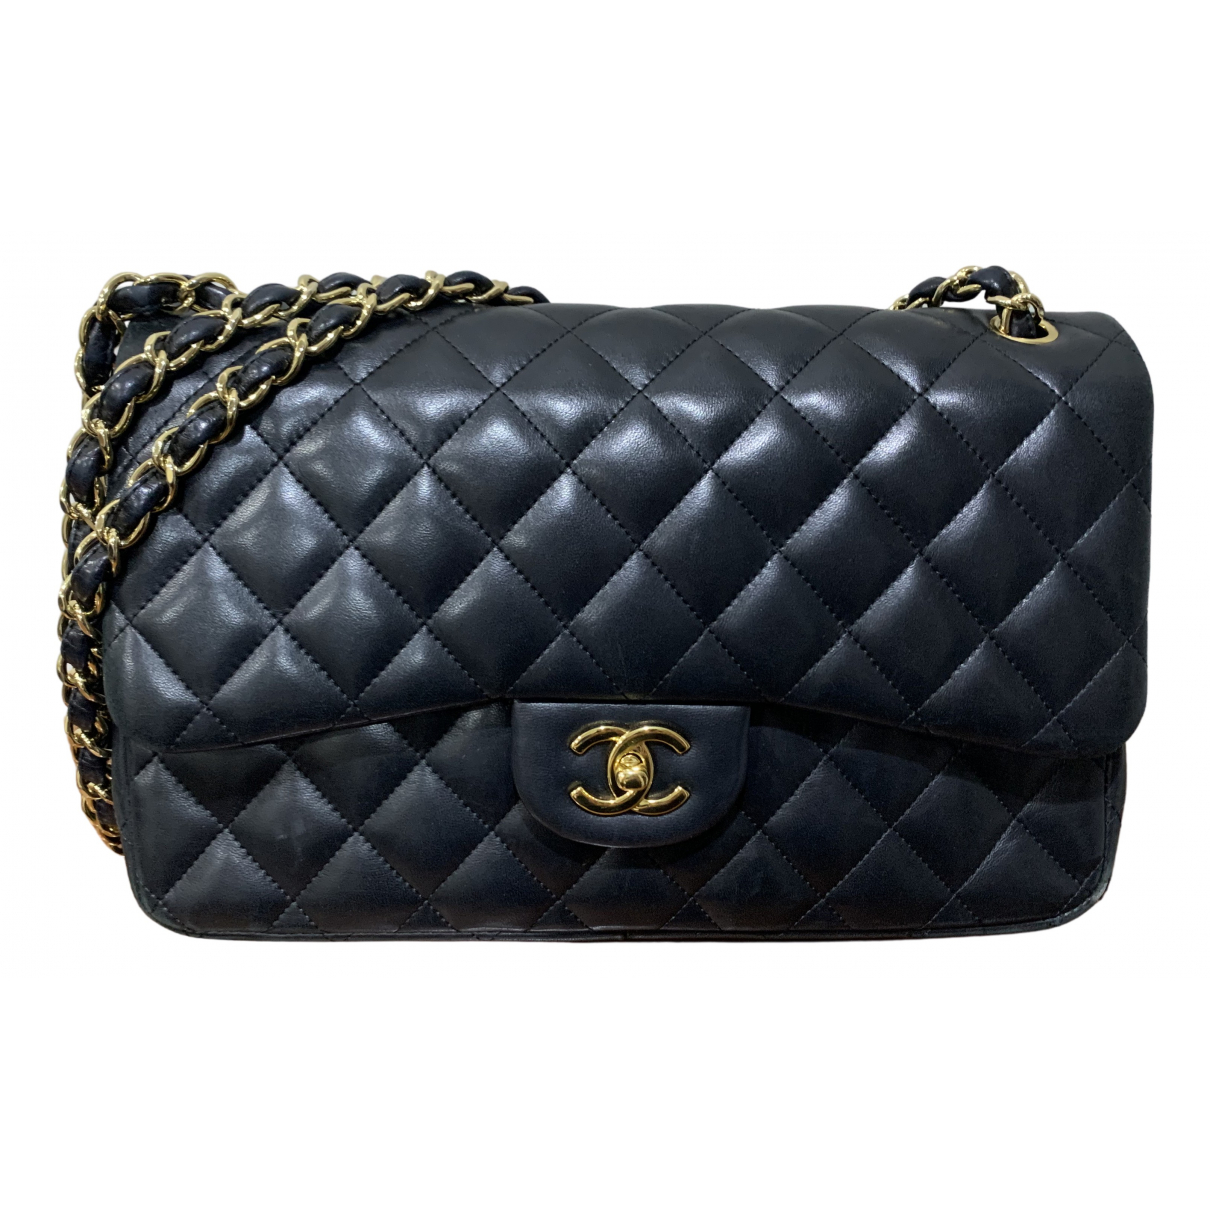 Chanel Timeless/Classique Black Leather handbag for Women N